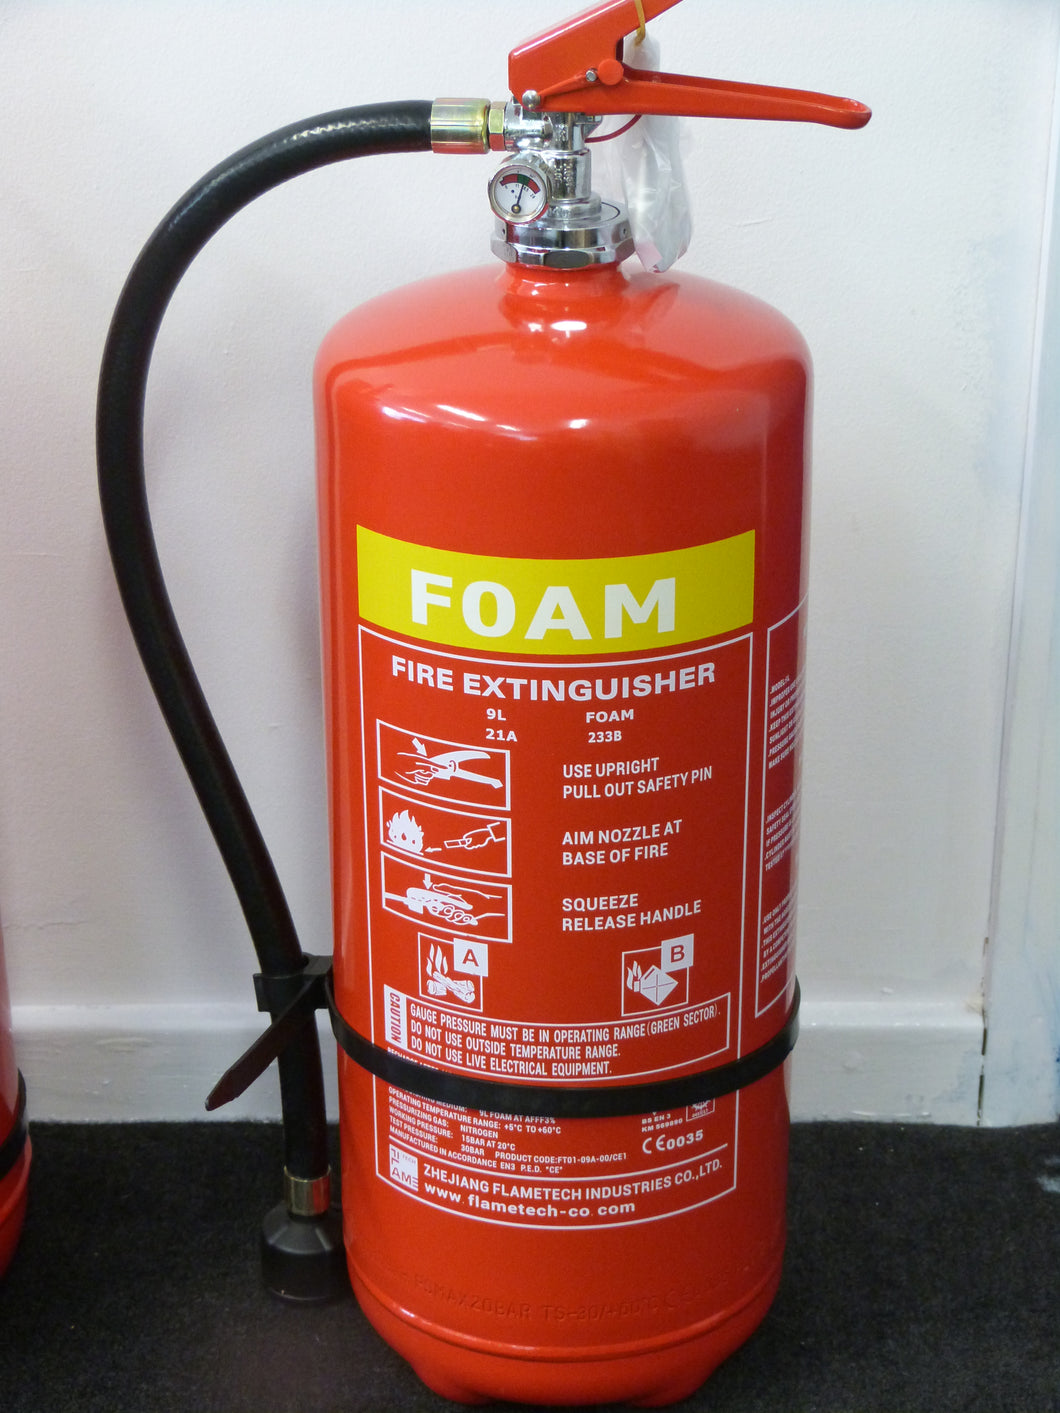 Foam Fire Extinguisher 9ltr with CE/BSI Approval